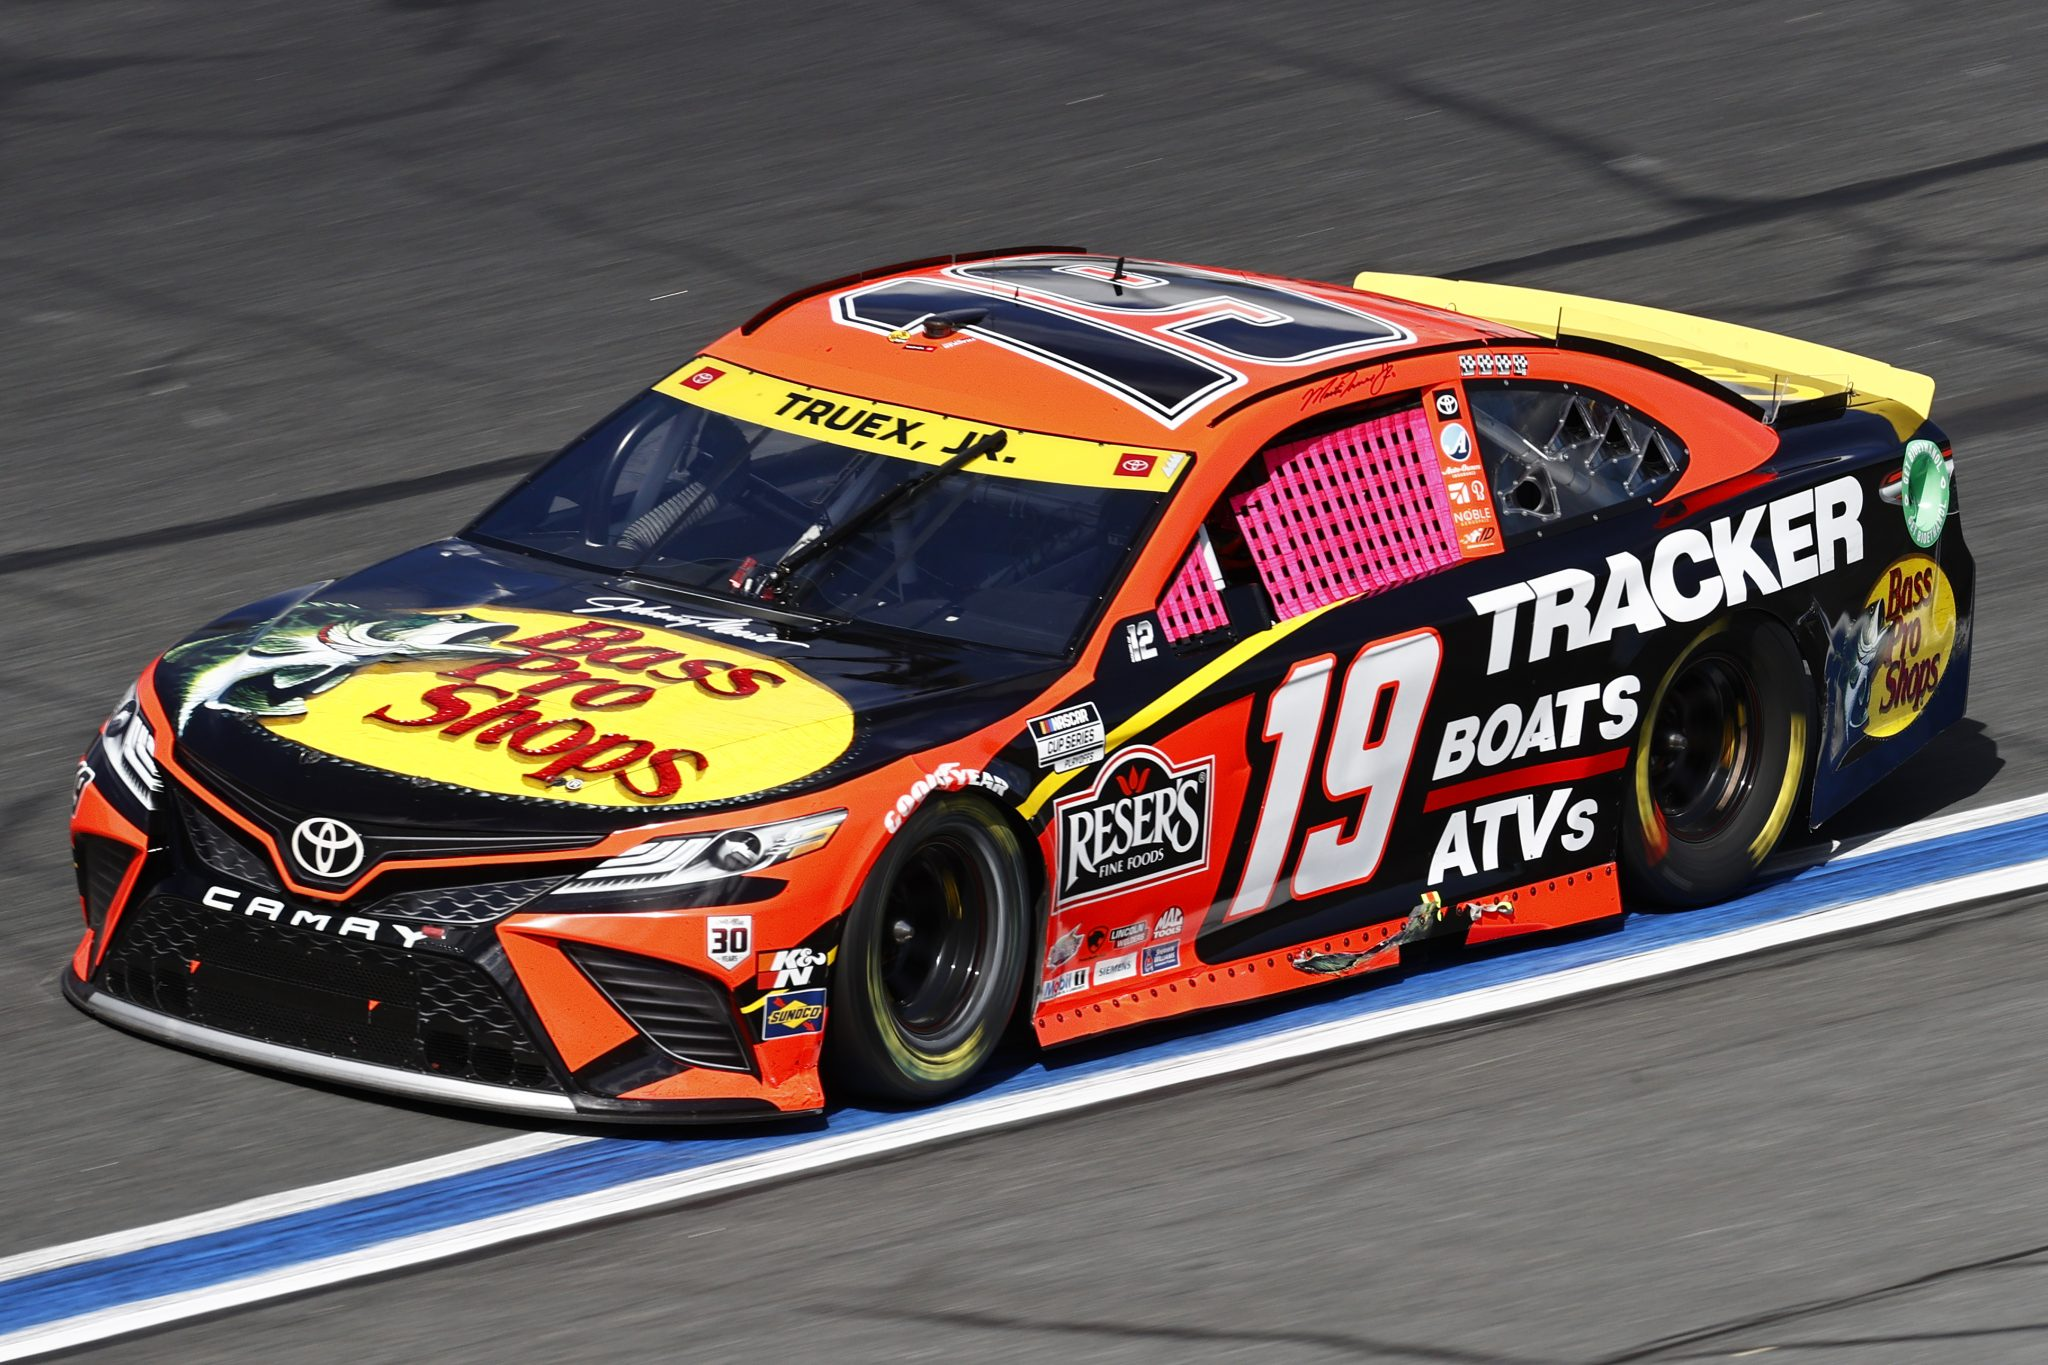 CONCORD, NORTH CAROLINA - OCTOBER 10: Martin Truex Jr., driver of the #19 Bass Pro Shops Toyota, drives during the NASCAR Cup Series Bank of America ROVAL 400 at Charlotte Motor Speedway on October 10, 2021 in Concord, North Carolina. (Photo by Jared C. Tilton/Getty Images) | Getty Images